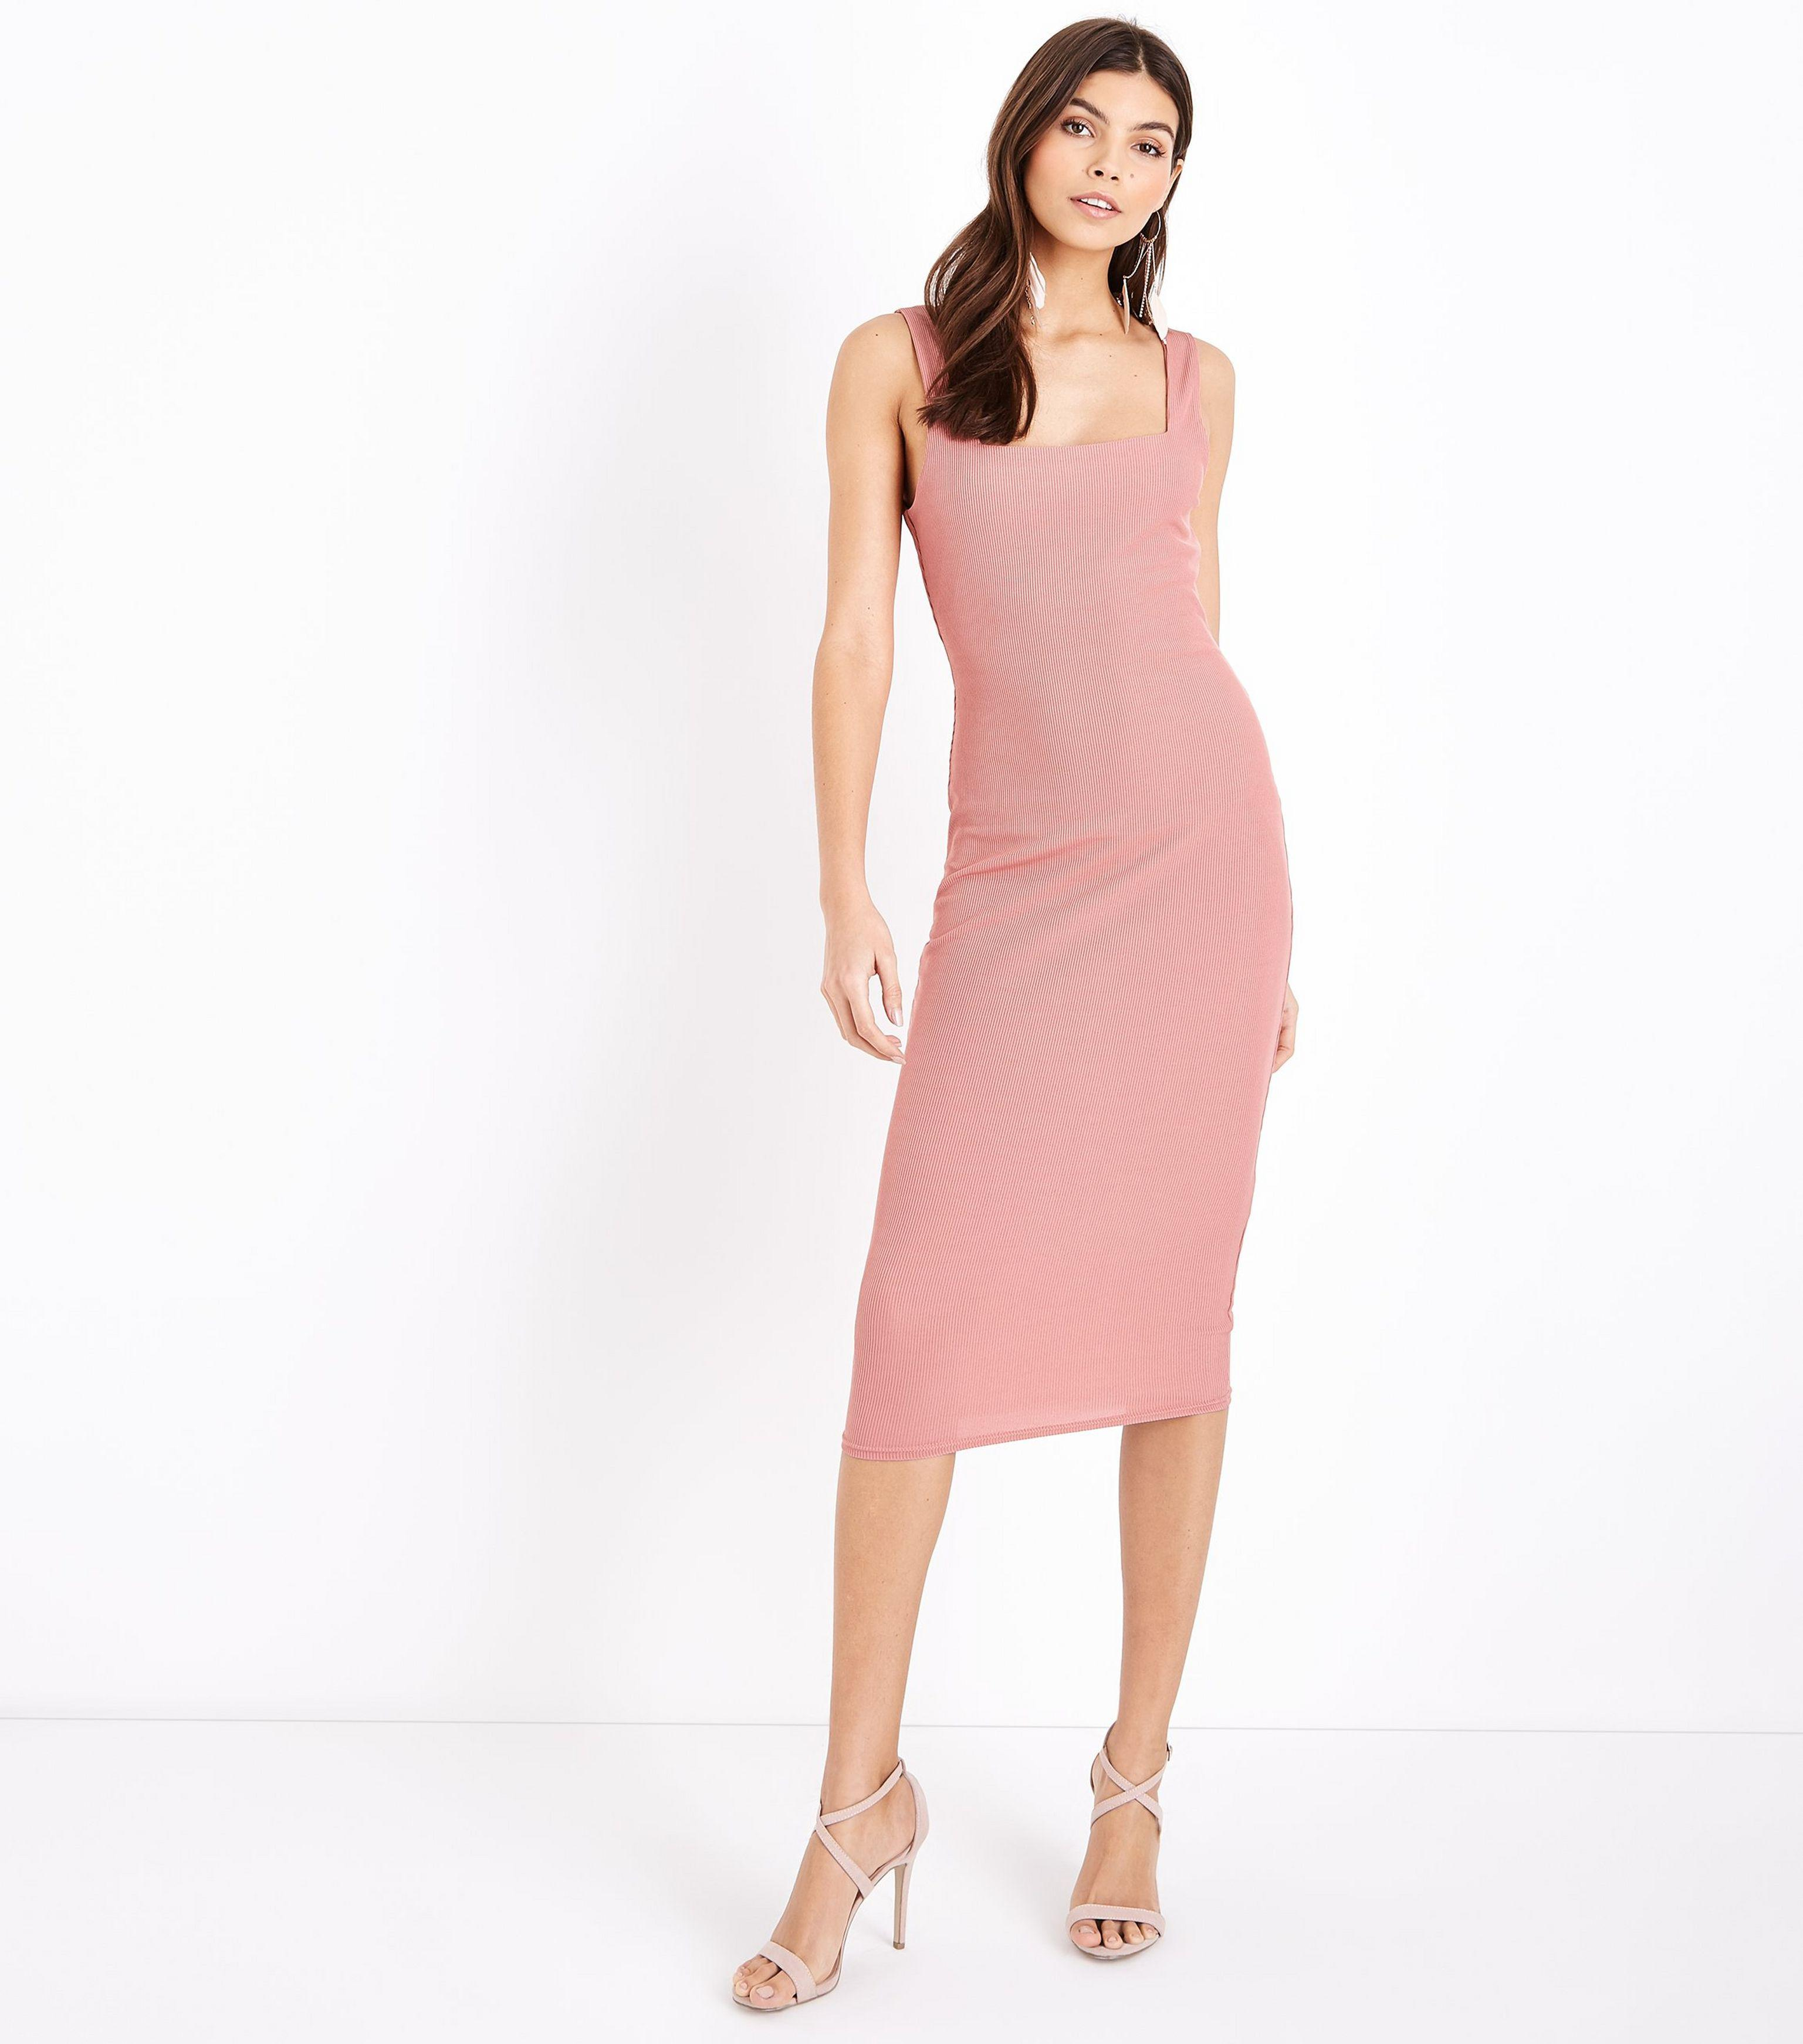 43ff4769a7f Gallery. Previously sold at  New Look · Women s Pink Dresses